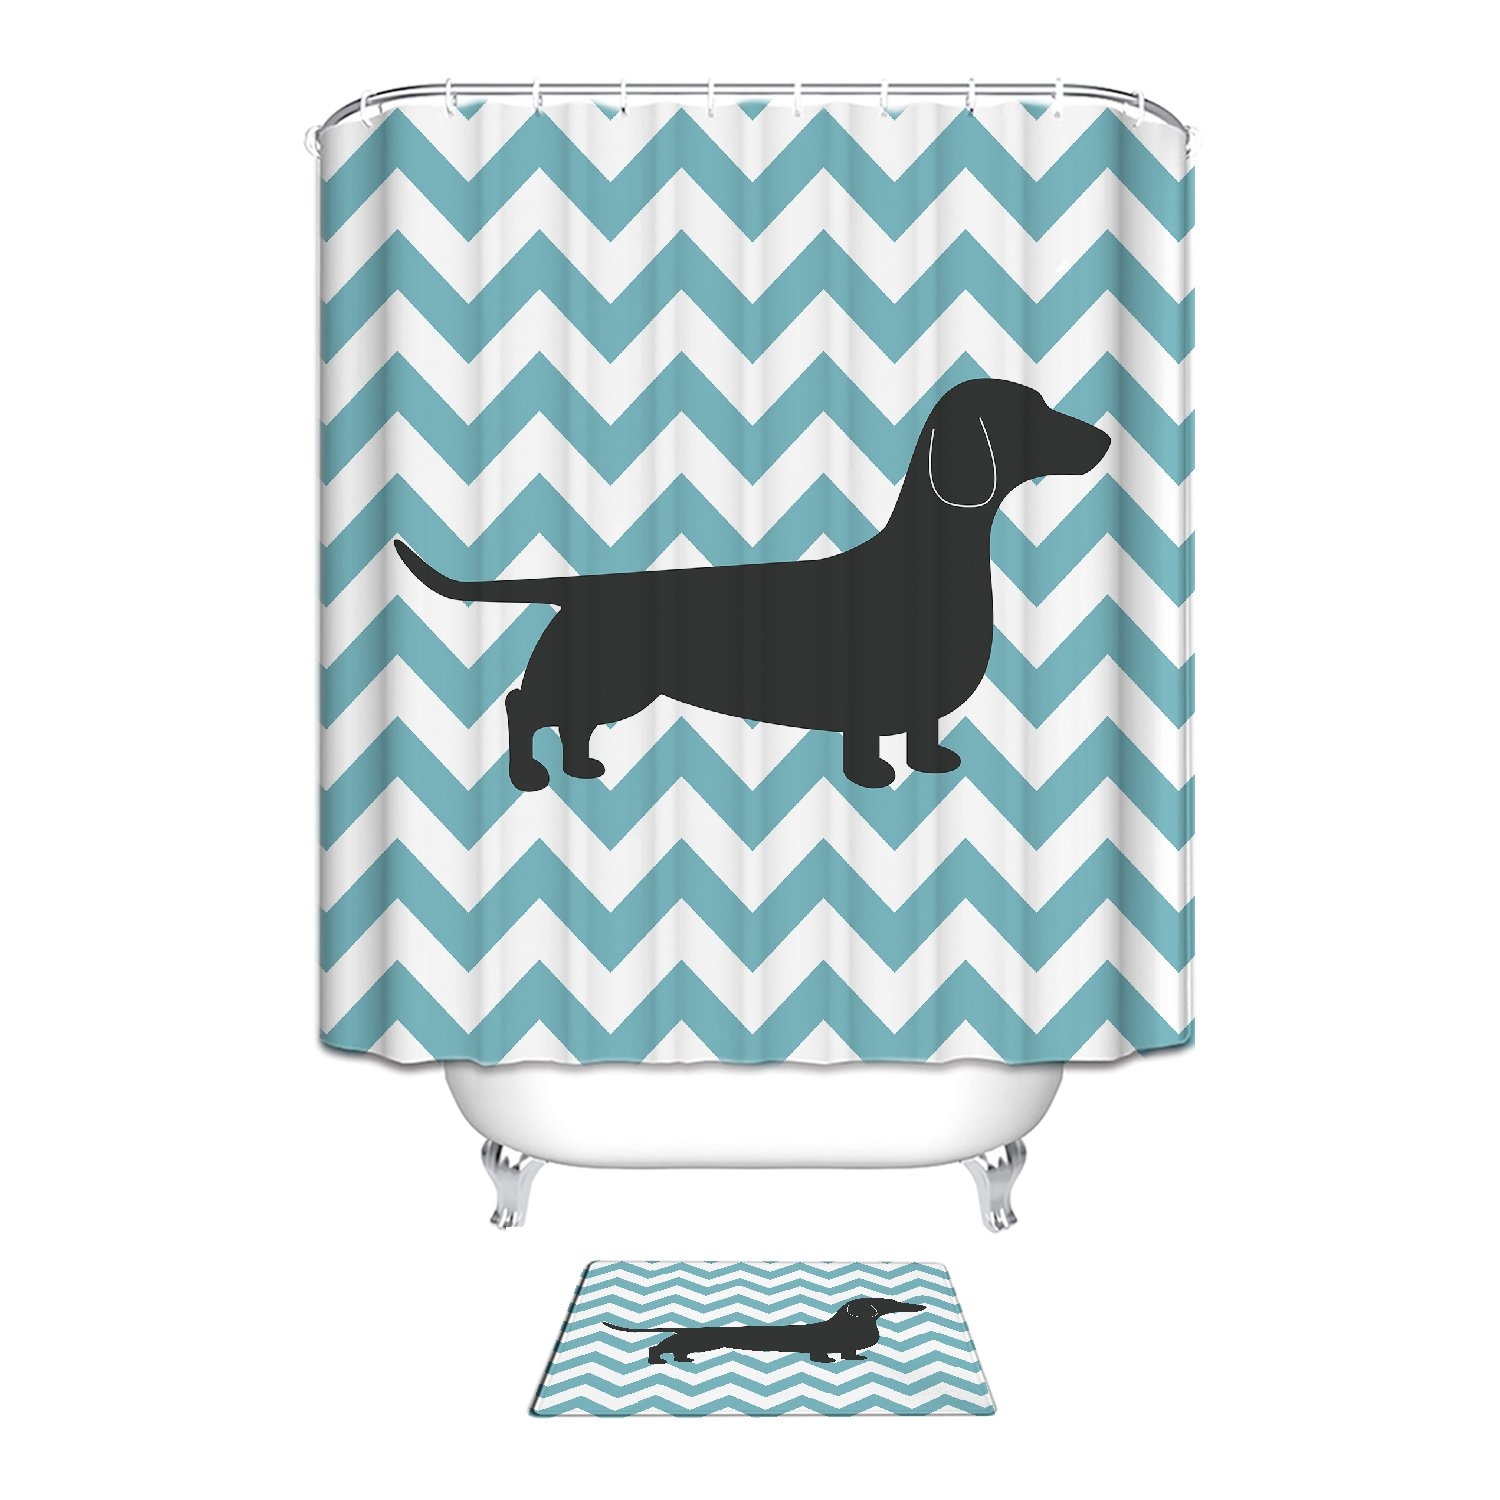 Blue White Zigzag Dachshund Dog Waterproof Polyester Fabric Shower Curtain with Washable Indoor Mat-12 Hooks